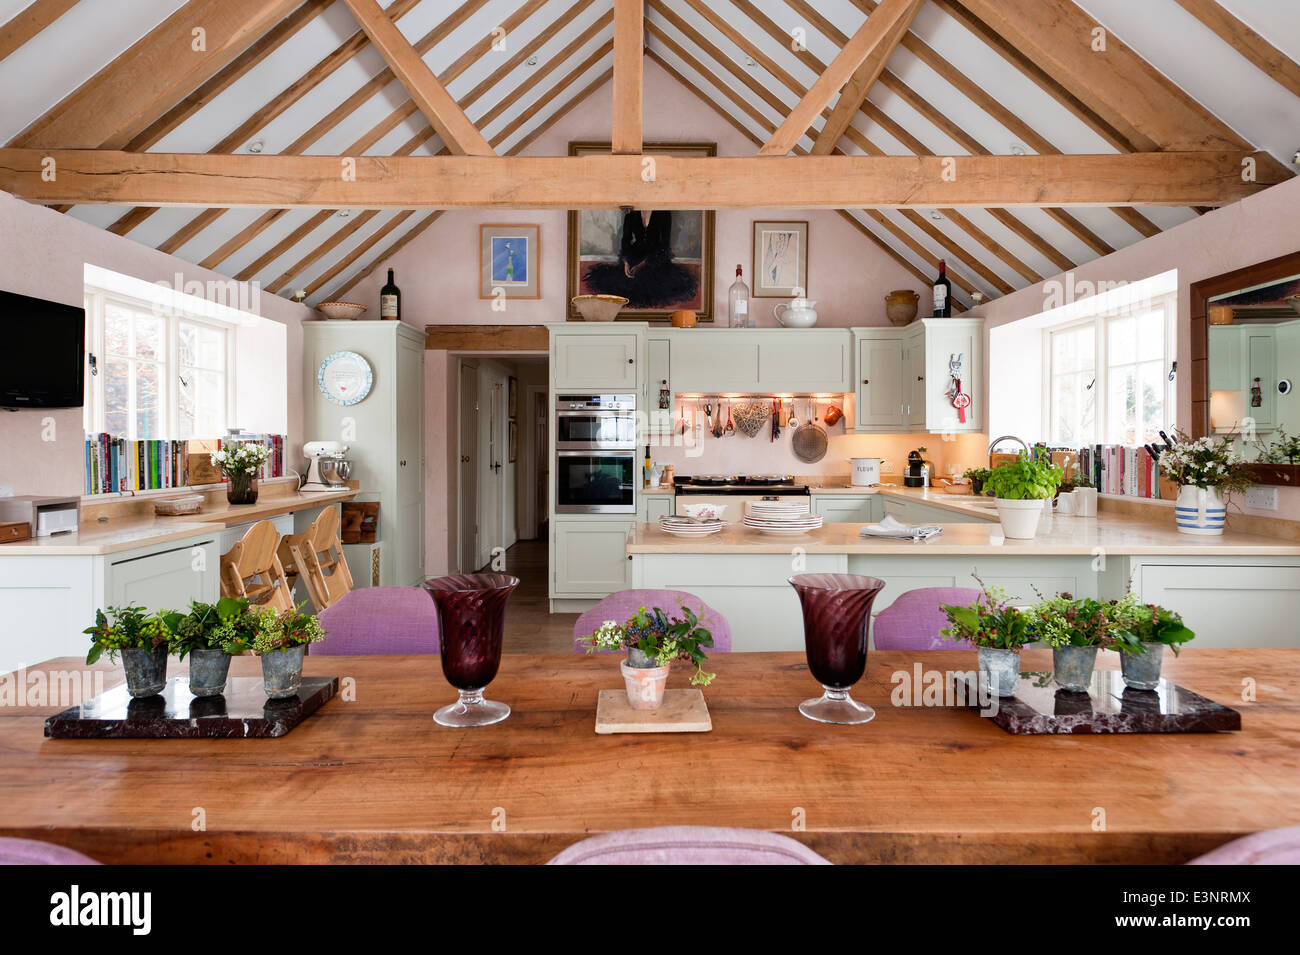 Open Plan Kitchen Diner With Pitched Roof And Beamed Ceilings The Dining Chairs Are Upholstered In Maya By Manuel Canovas Stock Photo Alamy